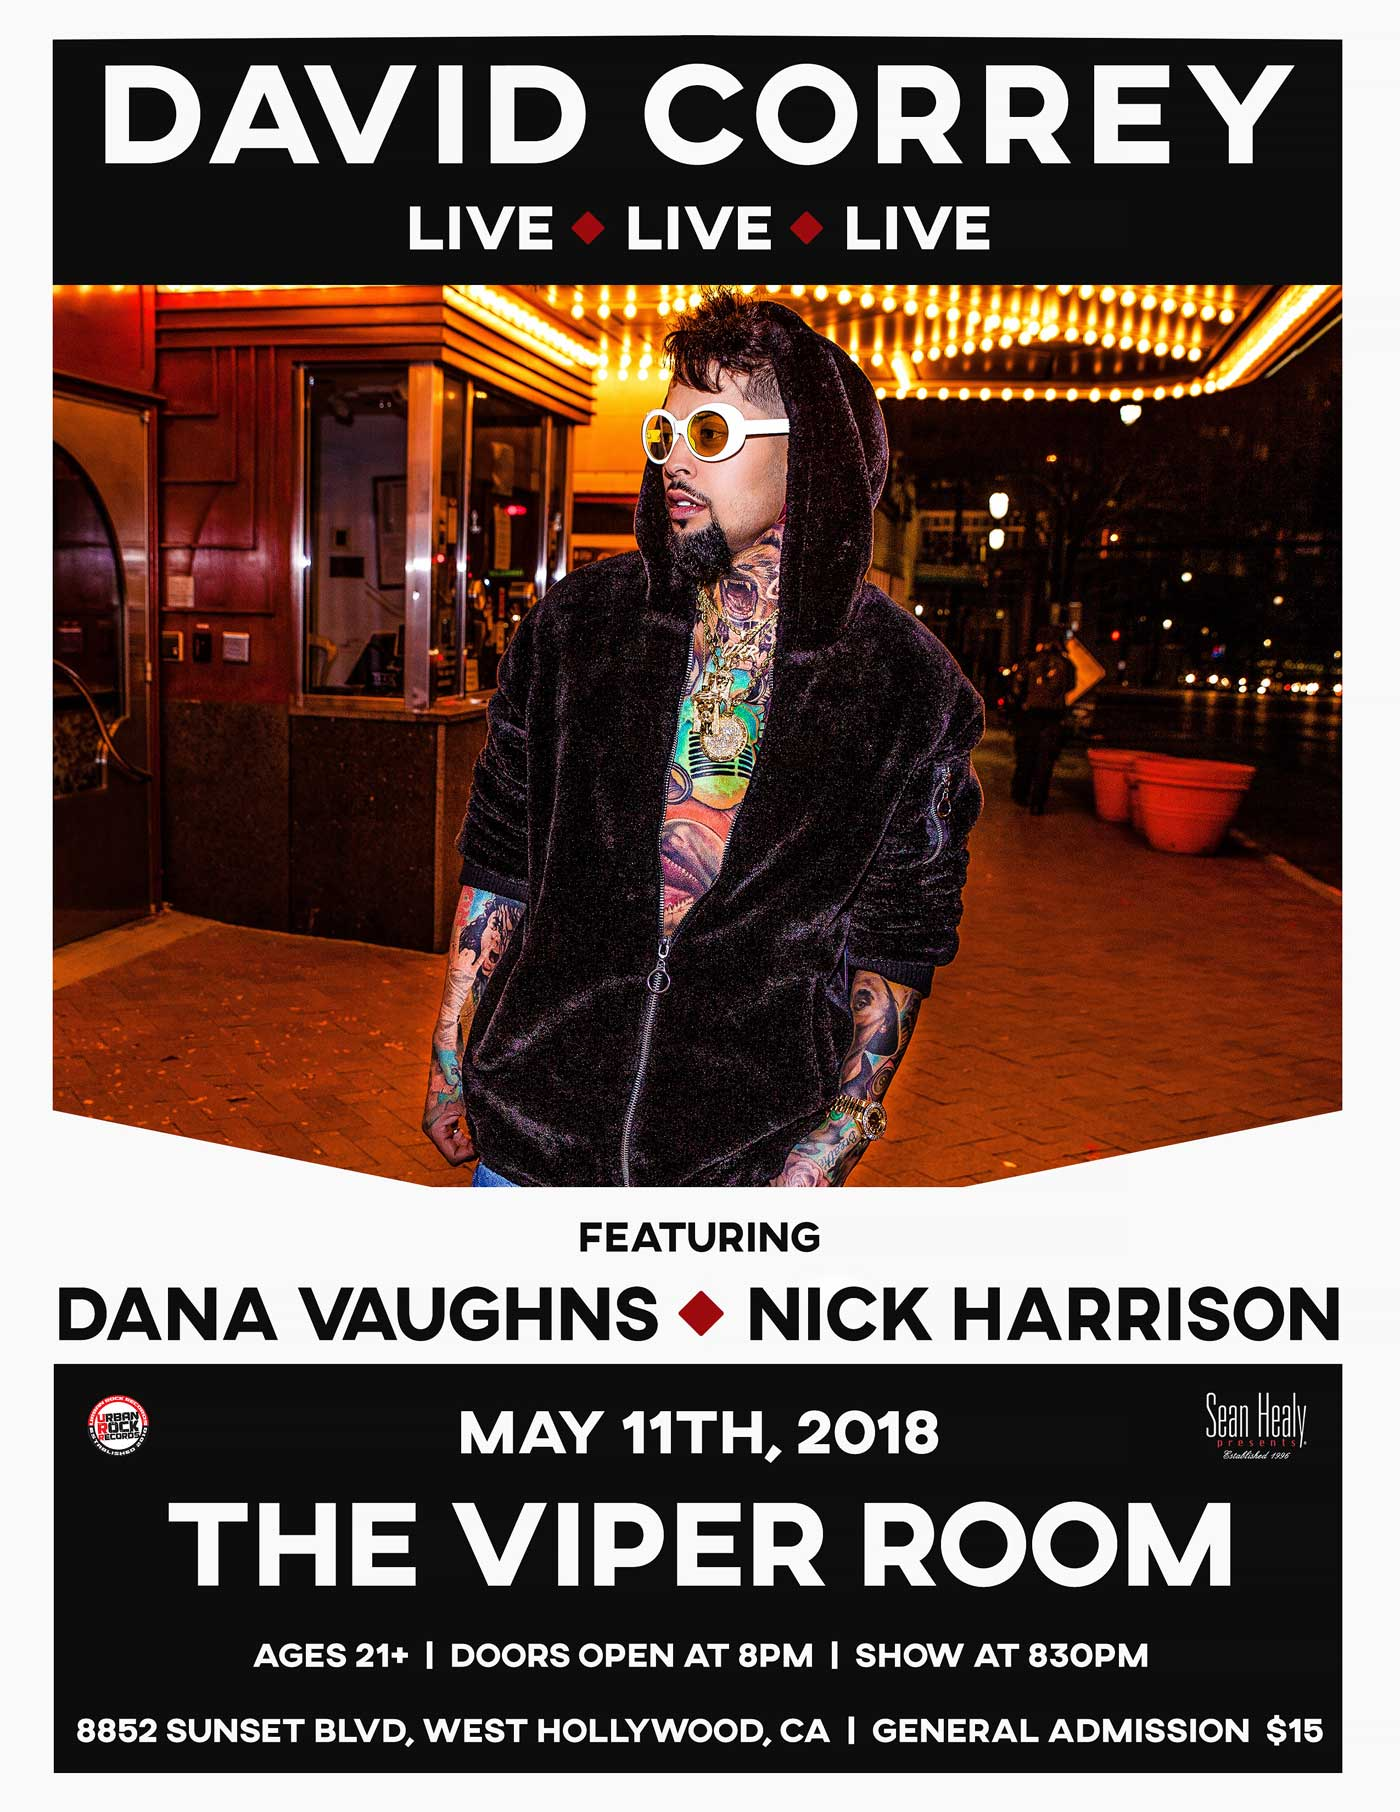 David Correy LIVE @ The Viper Room Friday, May 11th, 2018